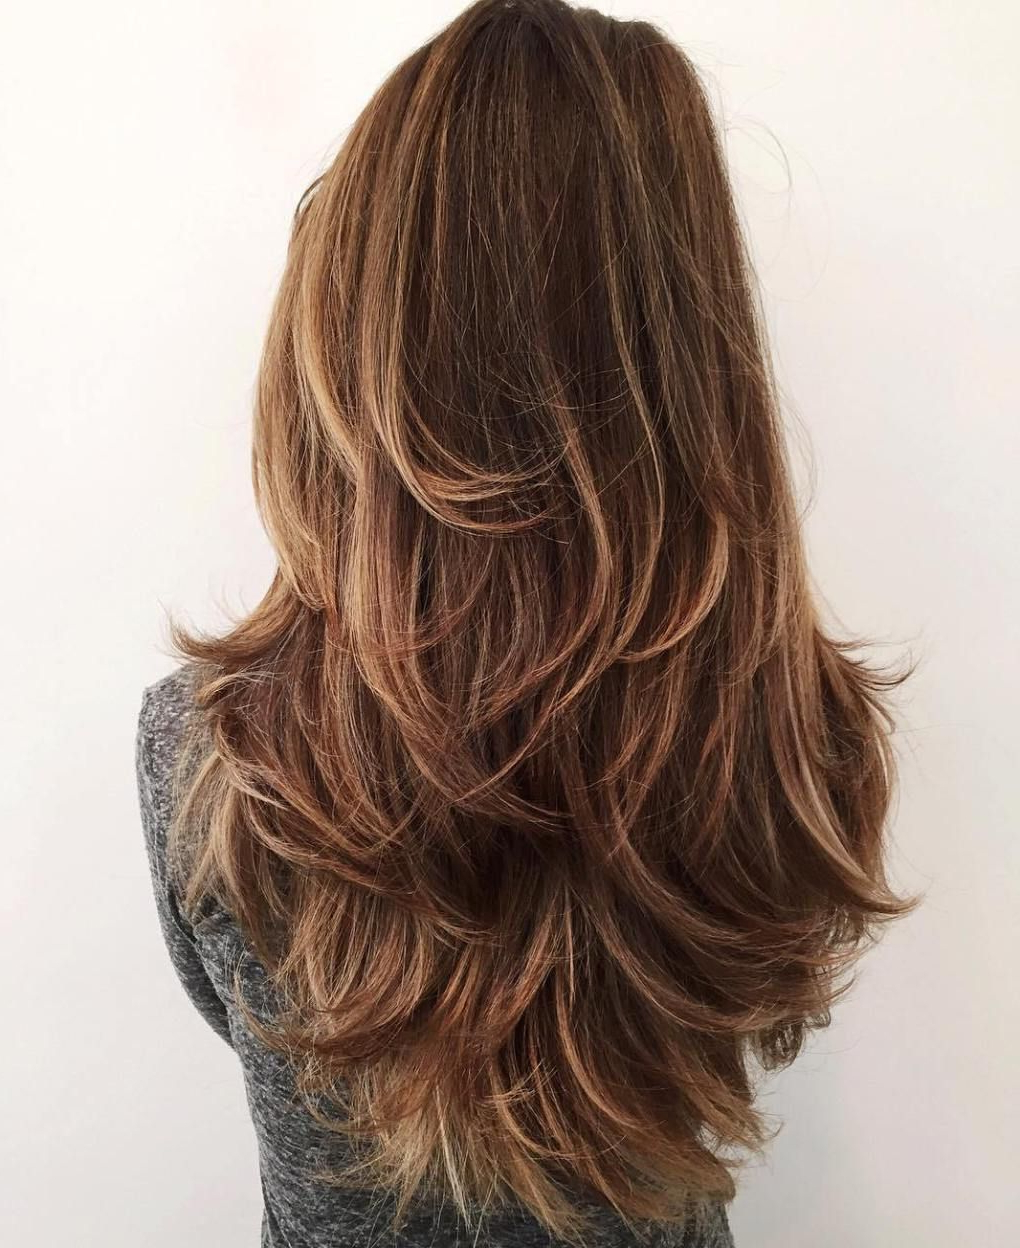 Most Current Long Feathered Haircuts With Layers With 50 Lovely Long Shag Haircuts For Effortless Stylish Looks In (View 15 of 20)